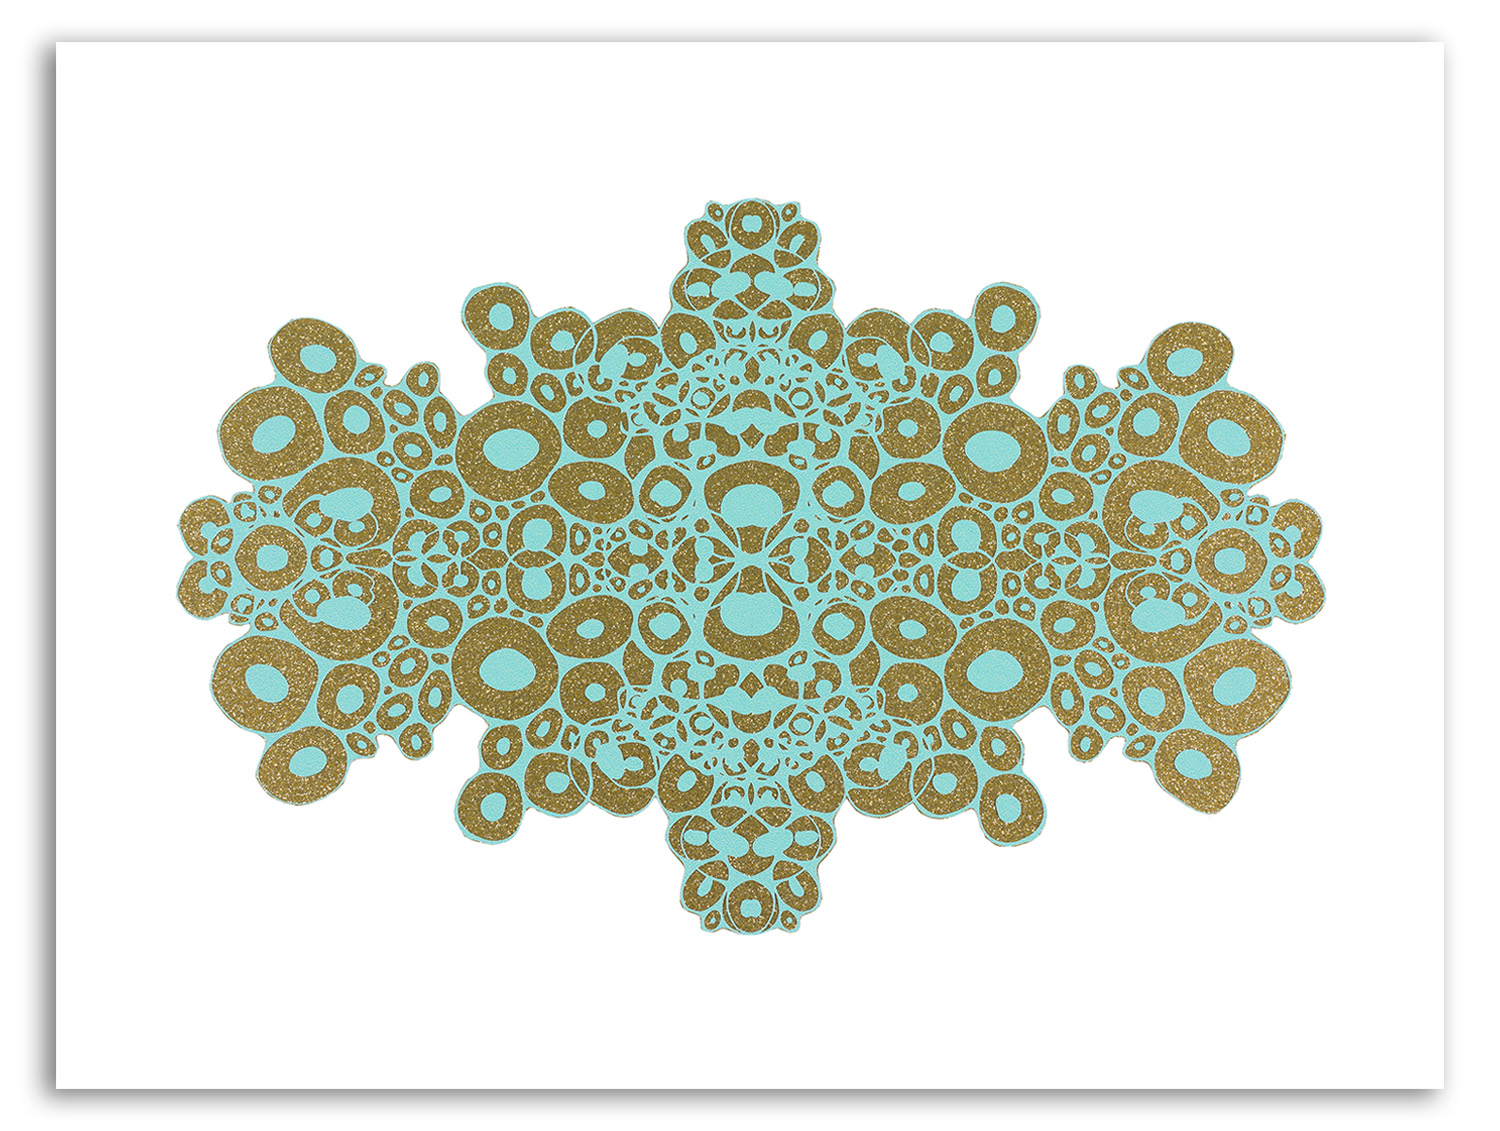 2016_05_Oh, How It Sparkles!_9.5x7.5 (web 1500)